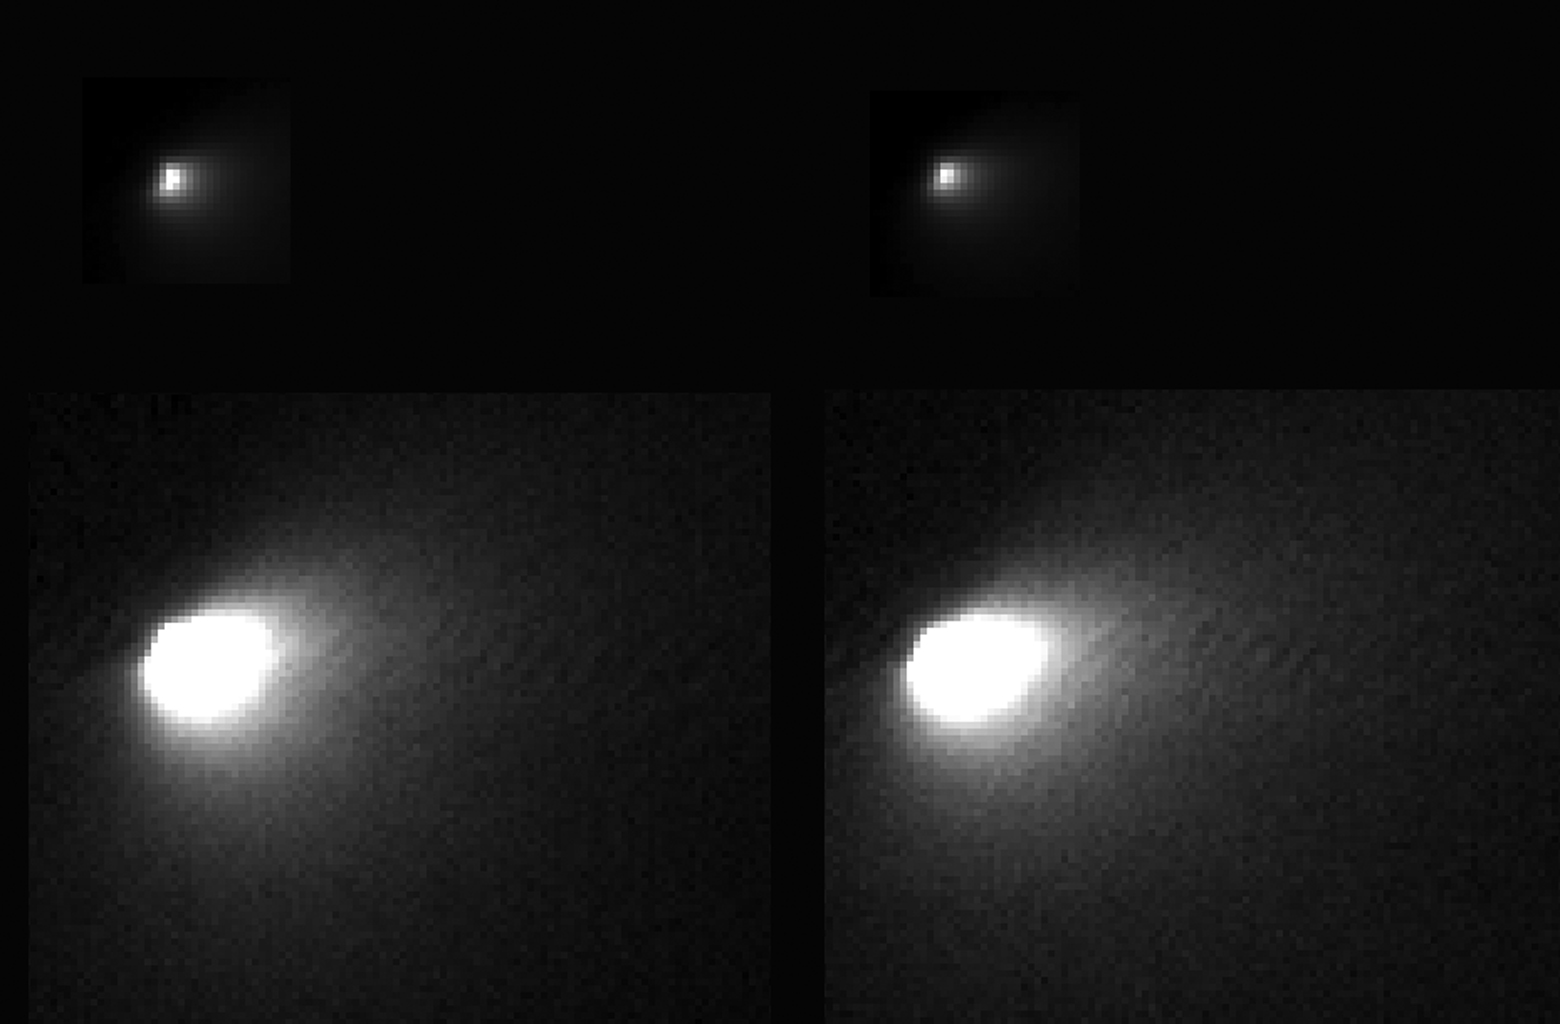 These images were taken of comet C/2013 A1 Siding Spring by NASA's Mars Reconnaissance Orbiter on Oct. 19, 2014, during the comet's close flyby of Mars and the spacecraft.